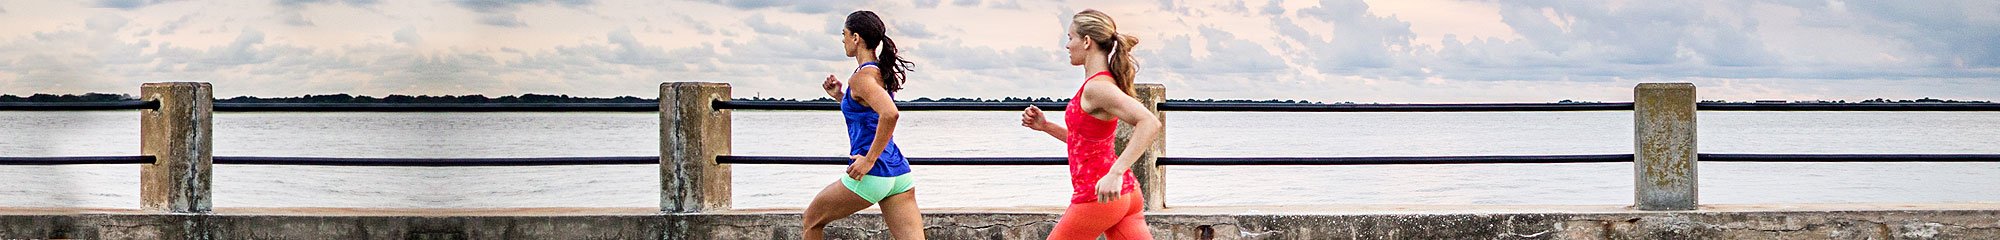 women's active clothing and shoes